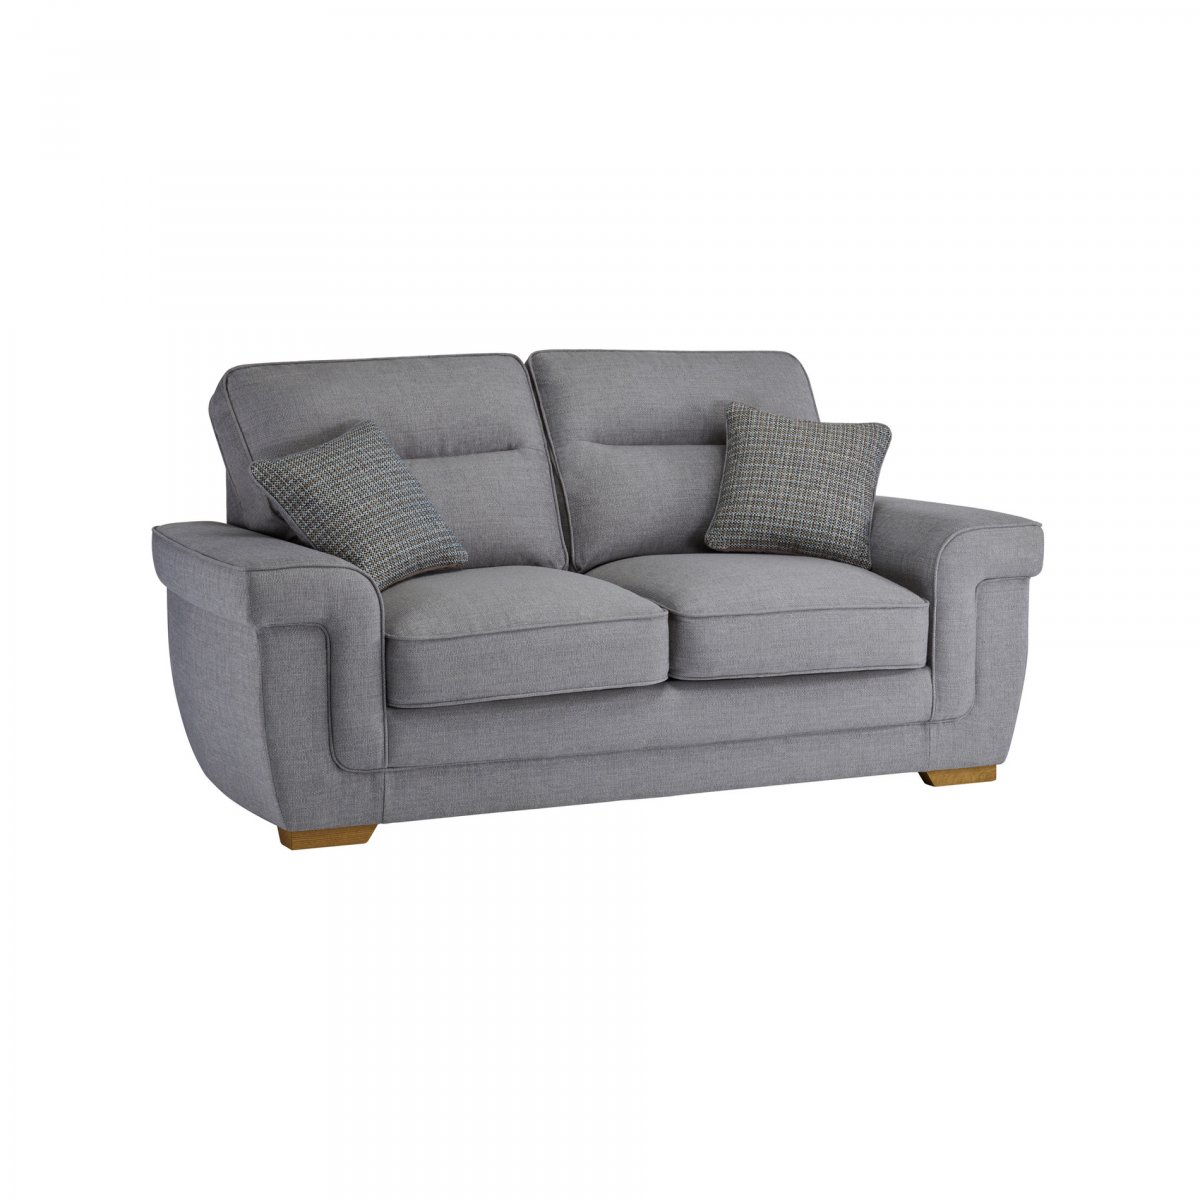 Kirby 2 seater sofa bed with deluxe mattress barley silver for Sofa 7 seater